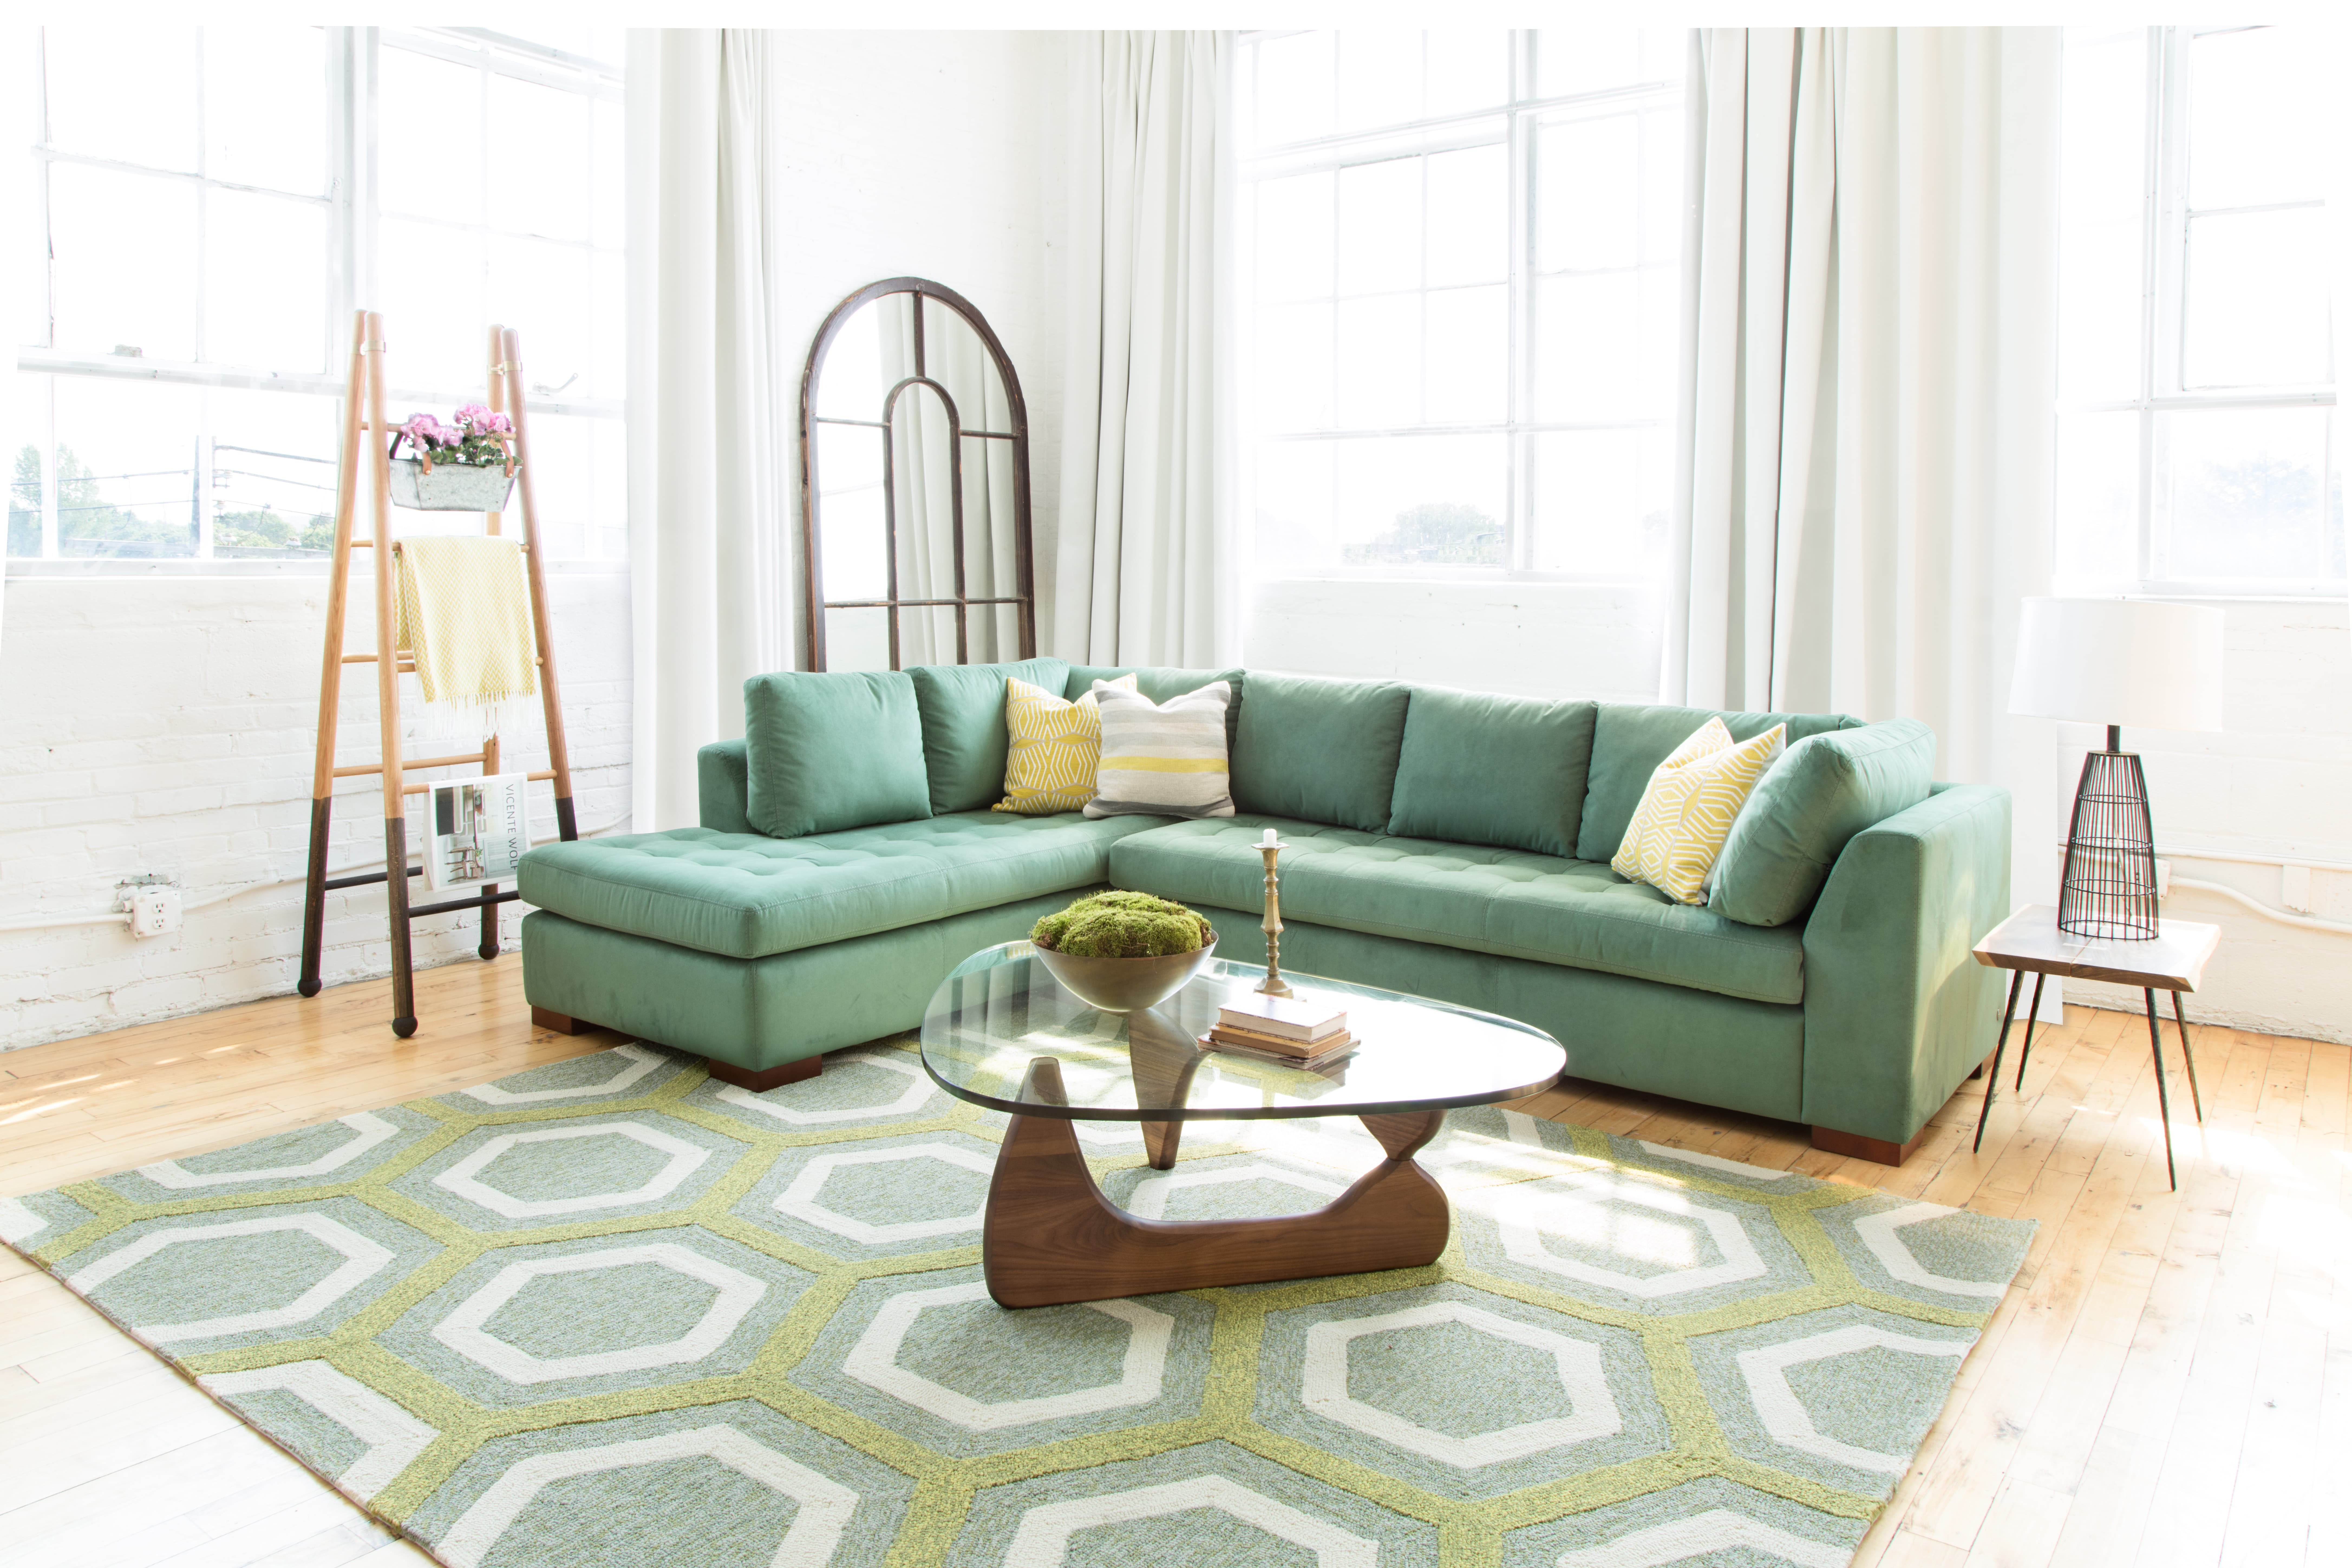 Circle Furniture - Why Does my Rug Shed